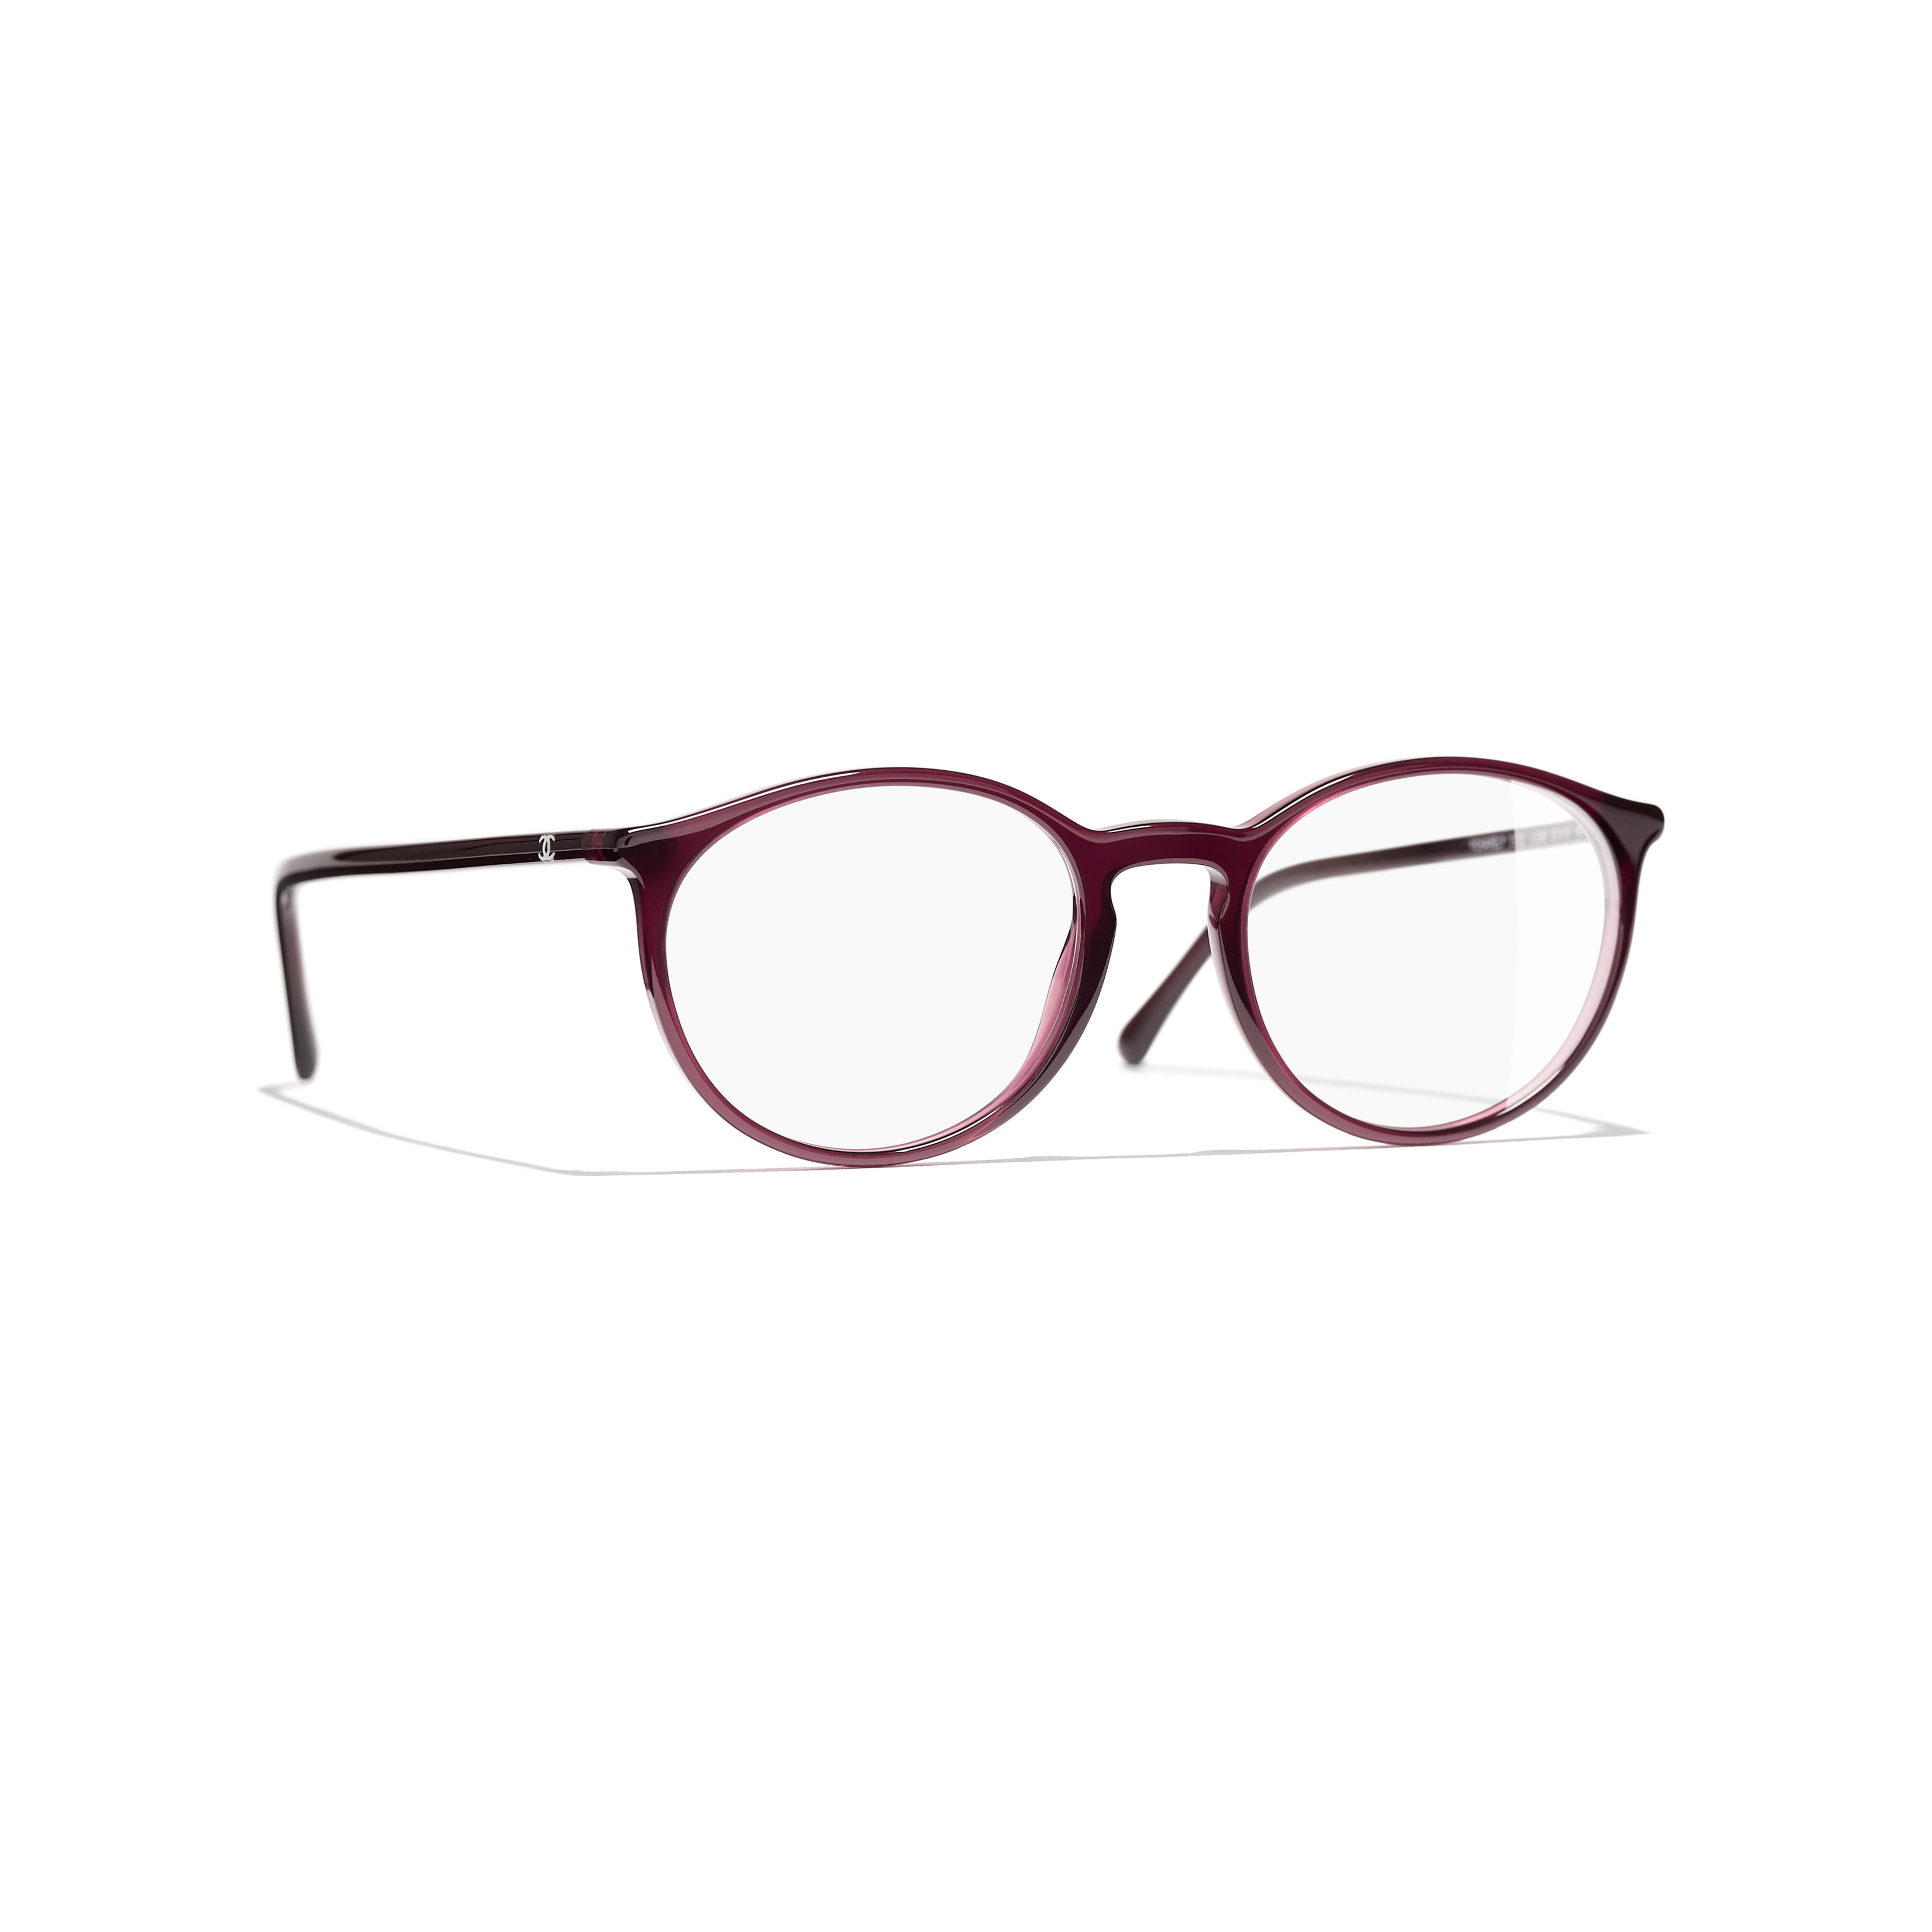 Pantos Eyeglasses - Red - Acetate - CHANEL - Default view - see standard sized version